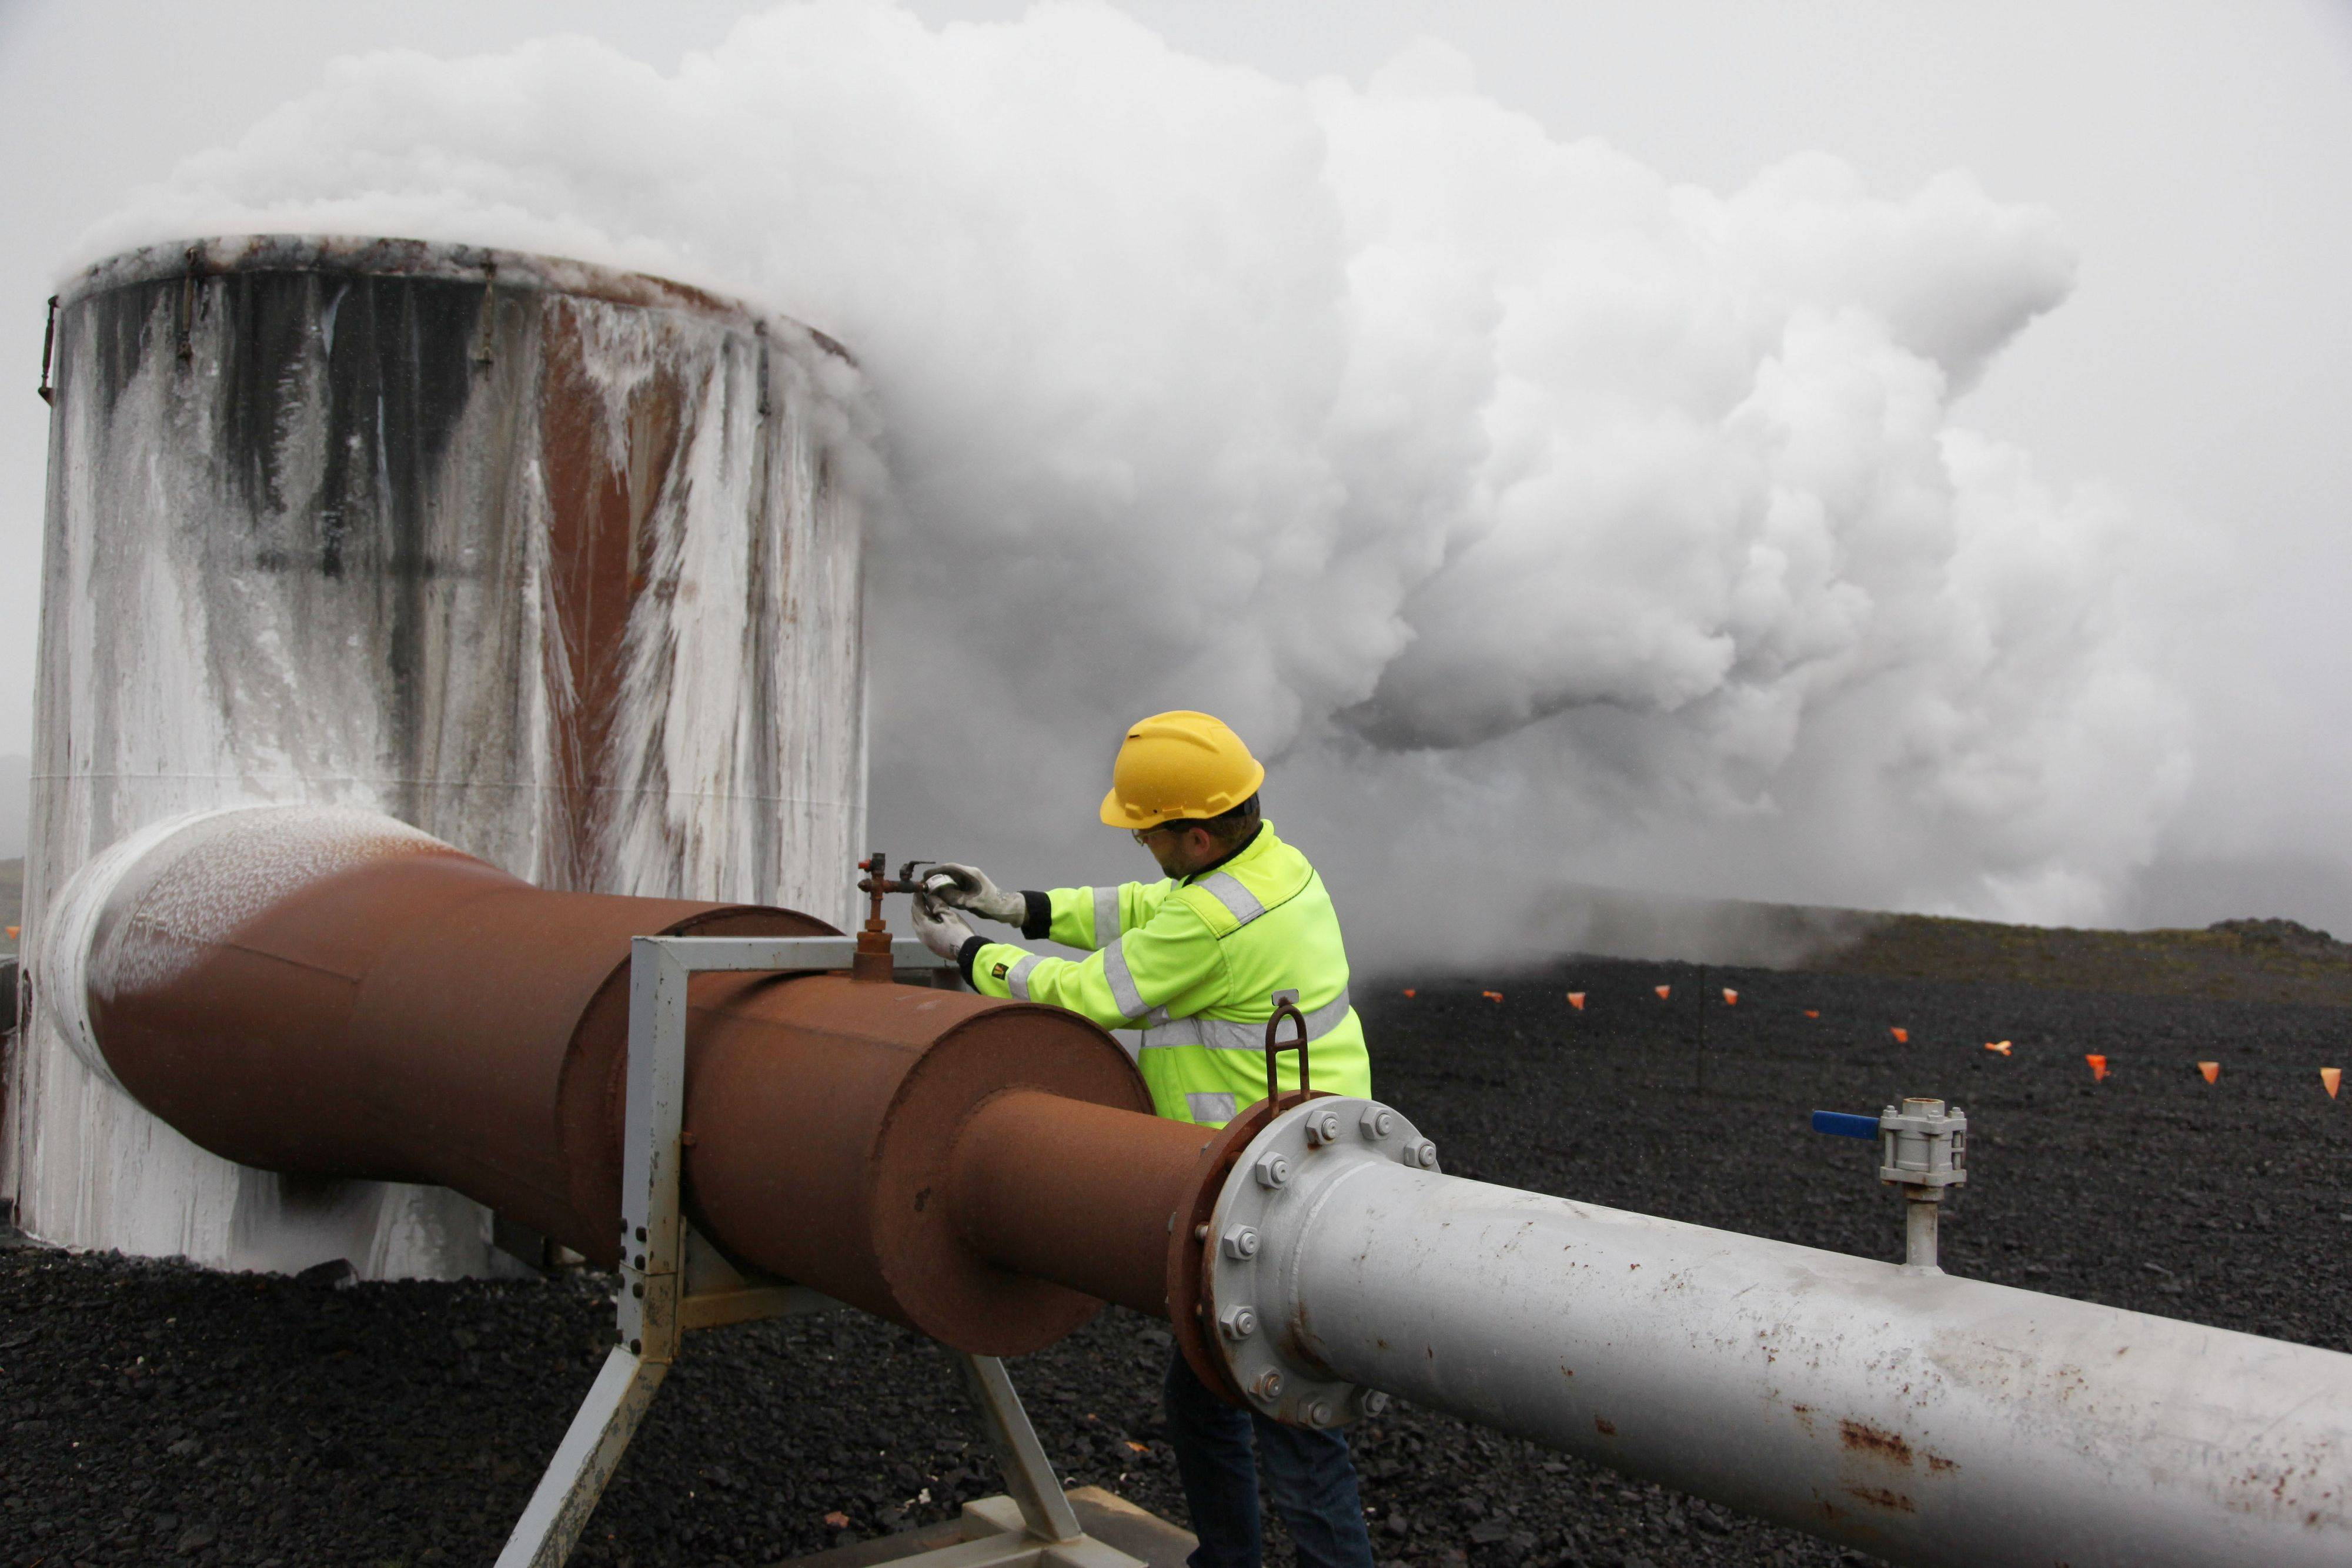 Bergur Sigfusson, the CarbFix experiment's technical manager, checks a valve at a test well at Reykjavik Energy's Hellisheidi geothermal power plant in Iceland. CarbFix's scientists will separate carbon dioxide from the volcanic field's steam and pump it underground to react with porous basalt rock, forming limestone, to see how well the gas most responsible for global warming can be locked away in harmless form.